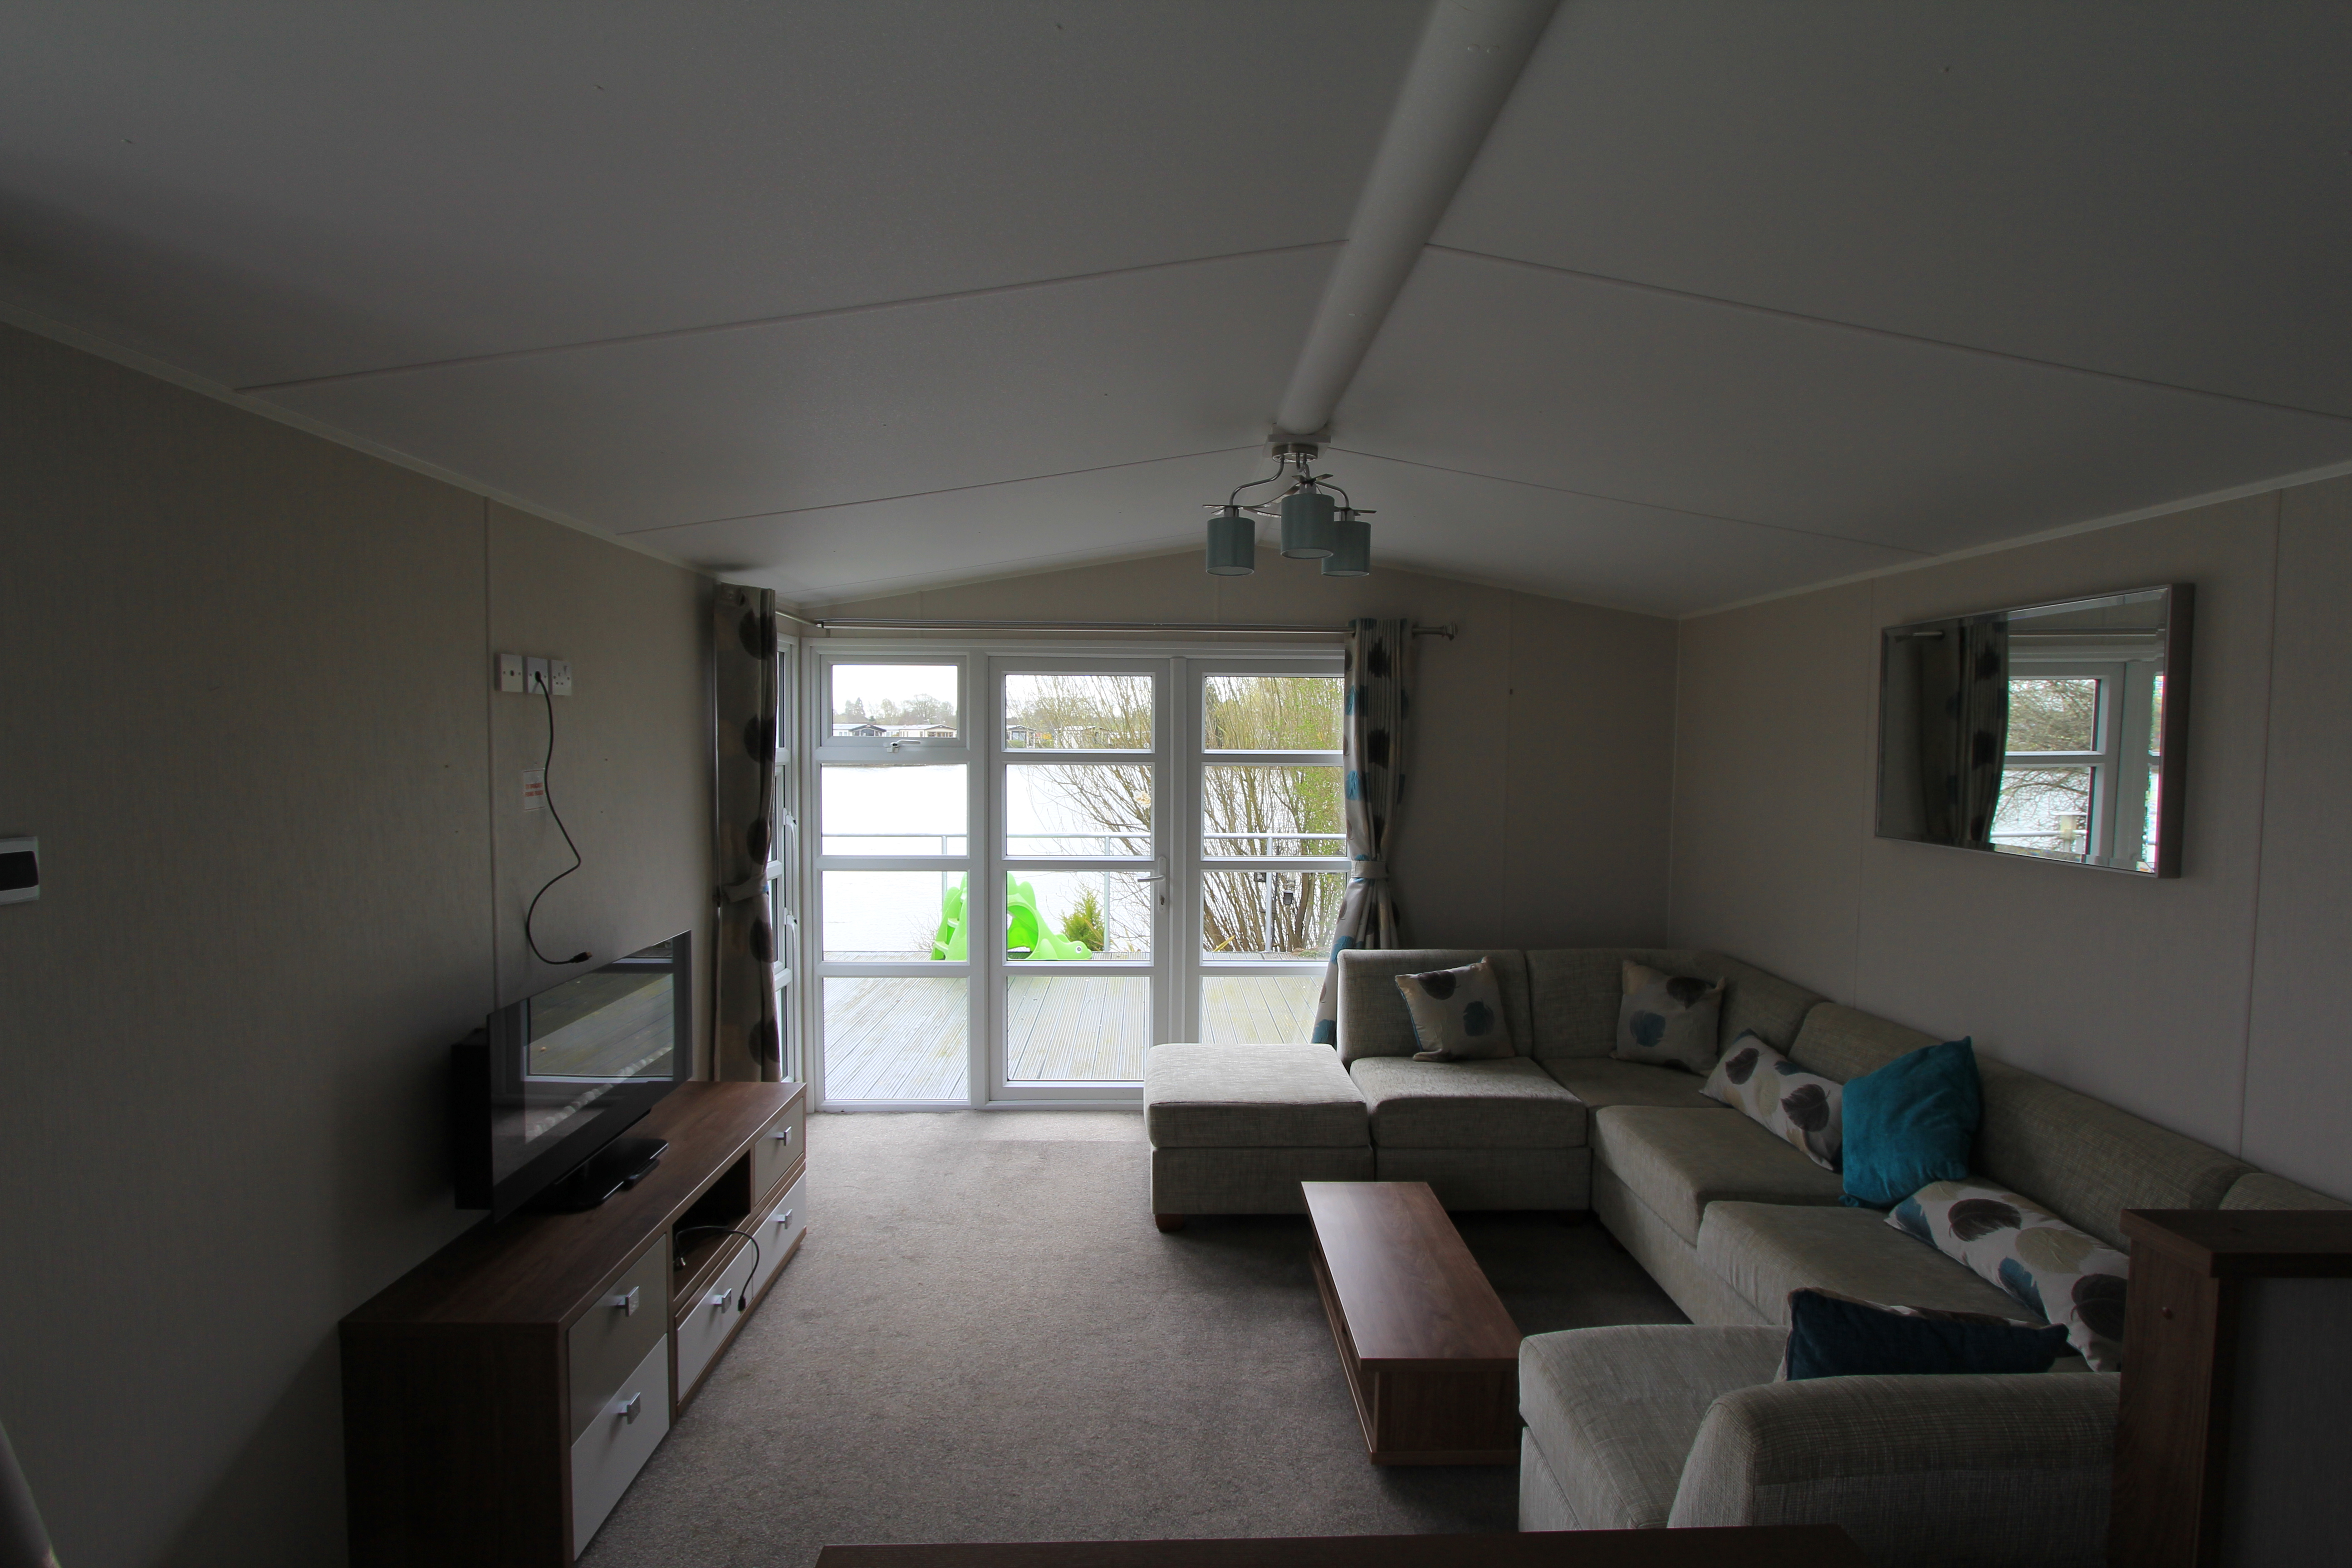 2018 Willerby Sheraton 40x13 D G C H 2bed Ns145